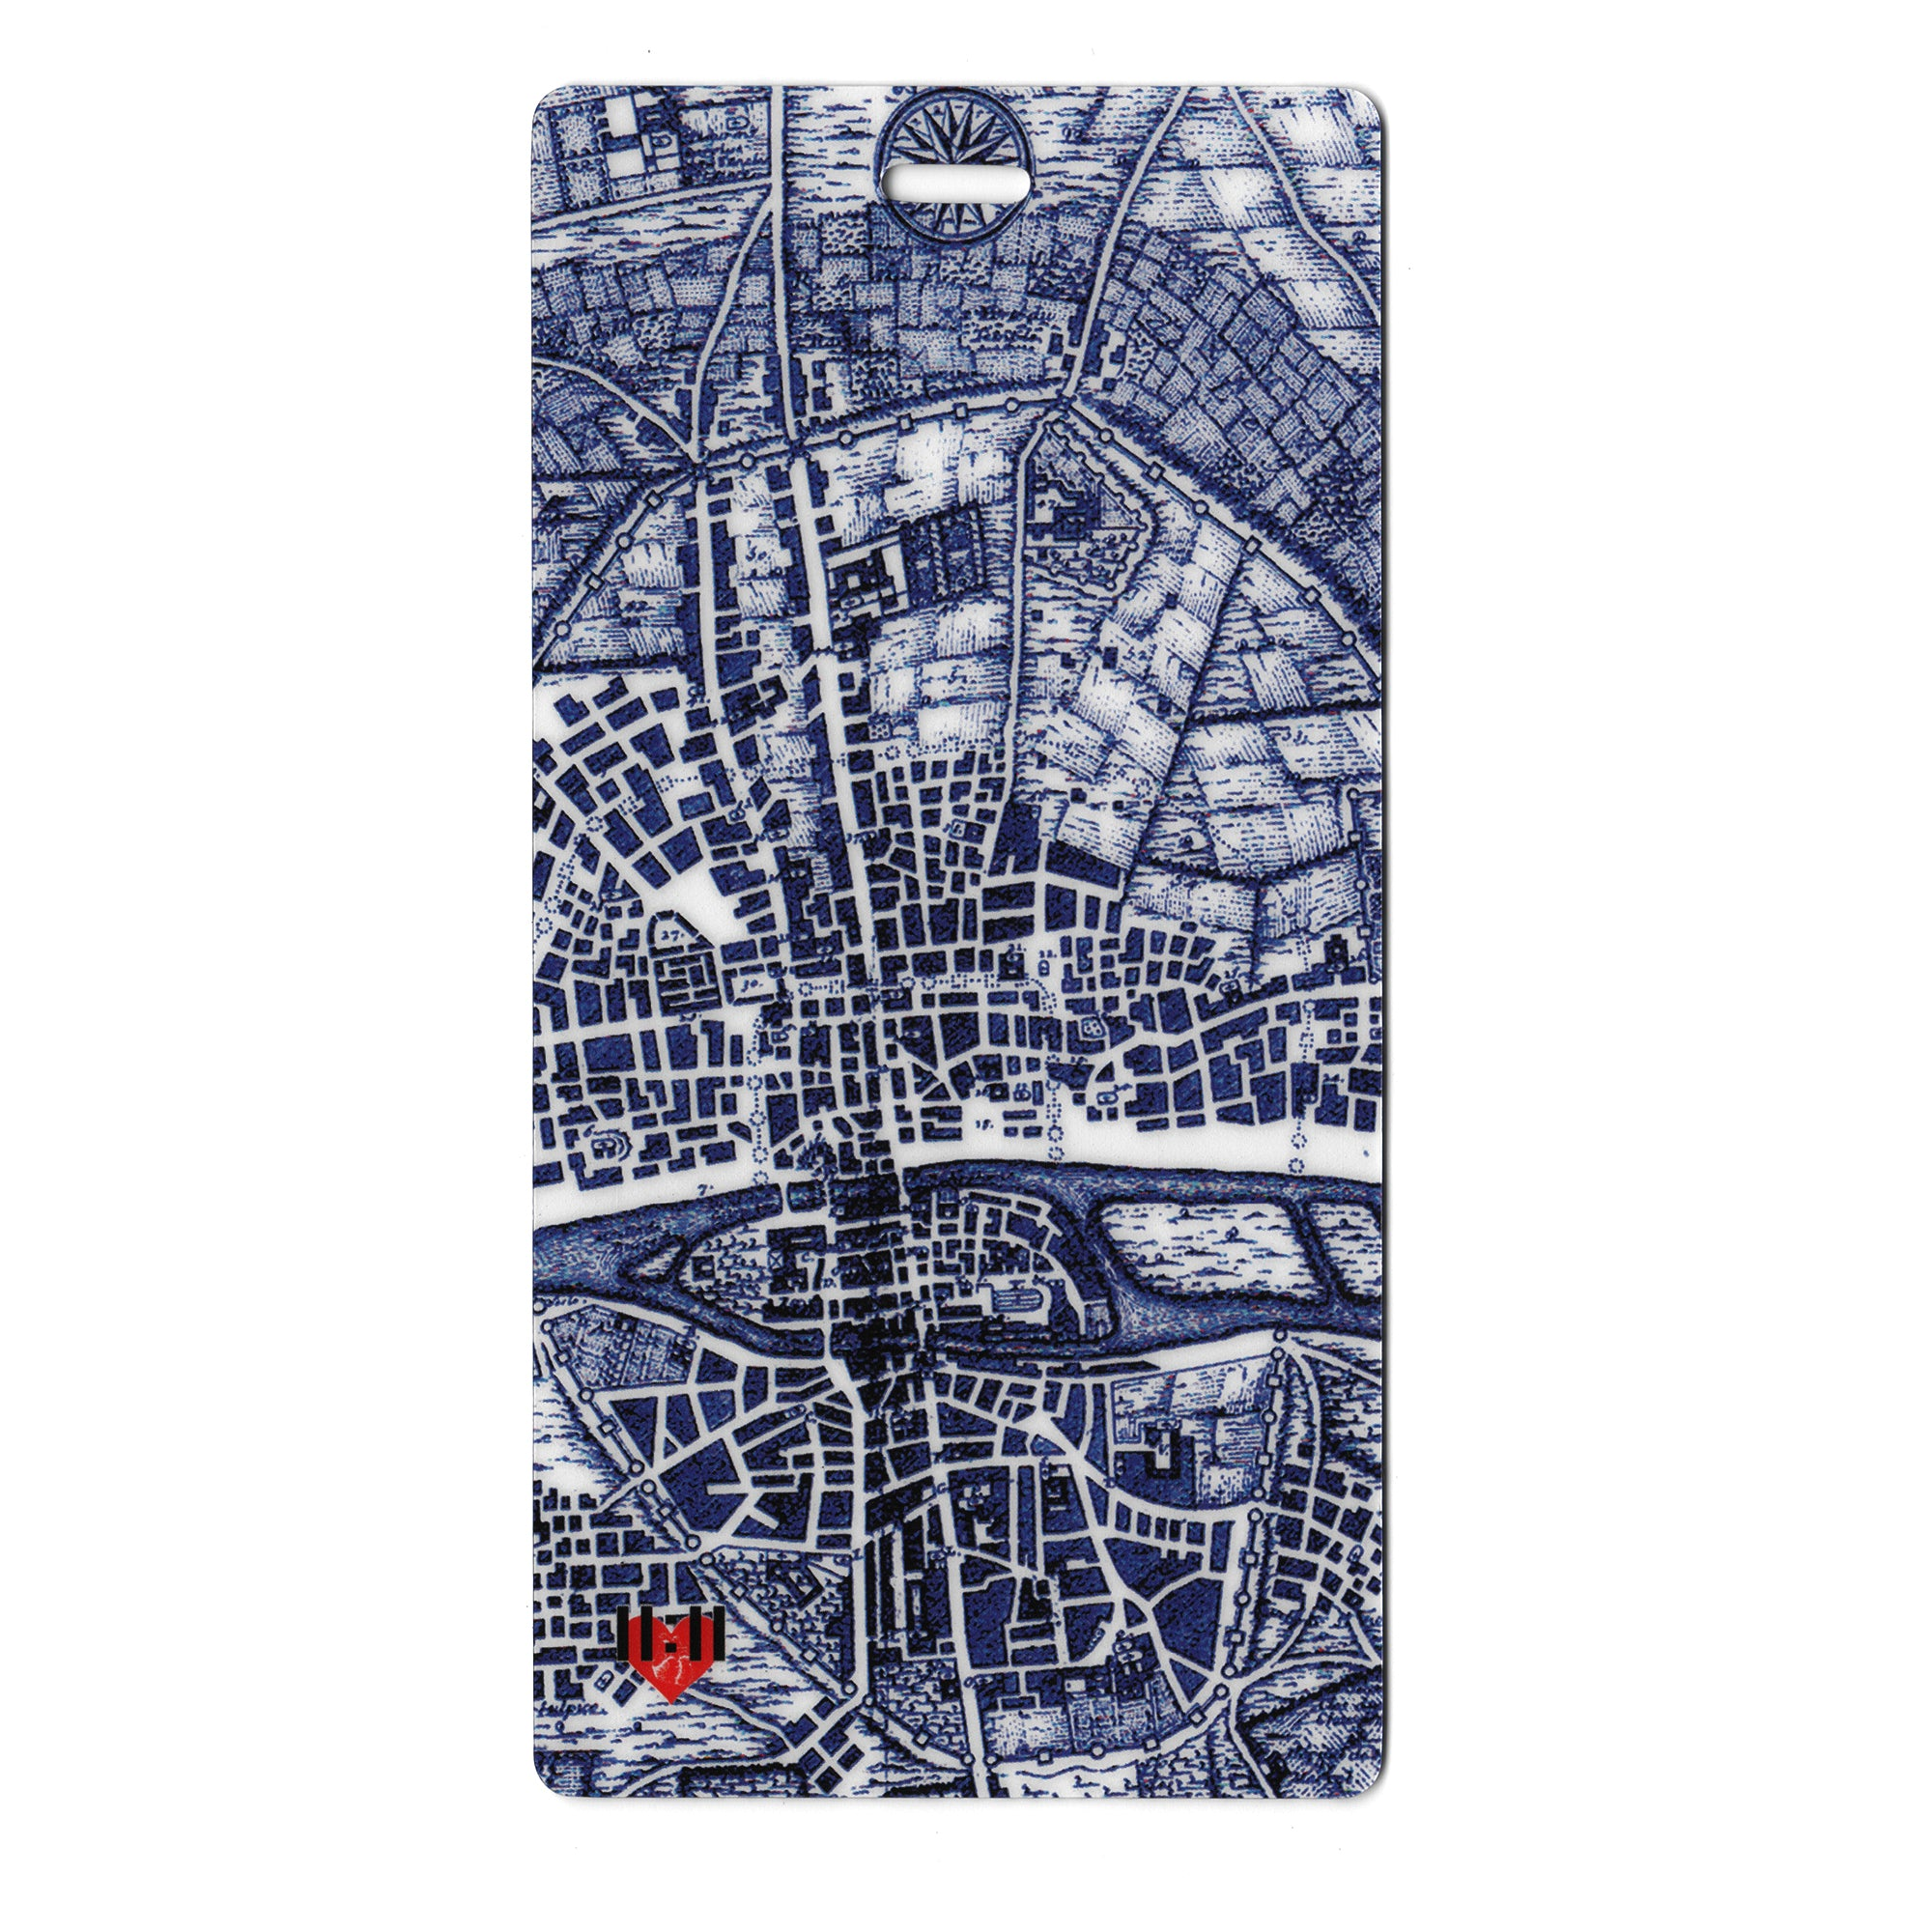 Map of Paris Luggage Bag Tag Set - 2 pc, Large by 11:11 Enterprises